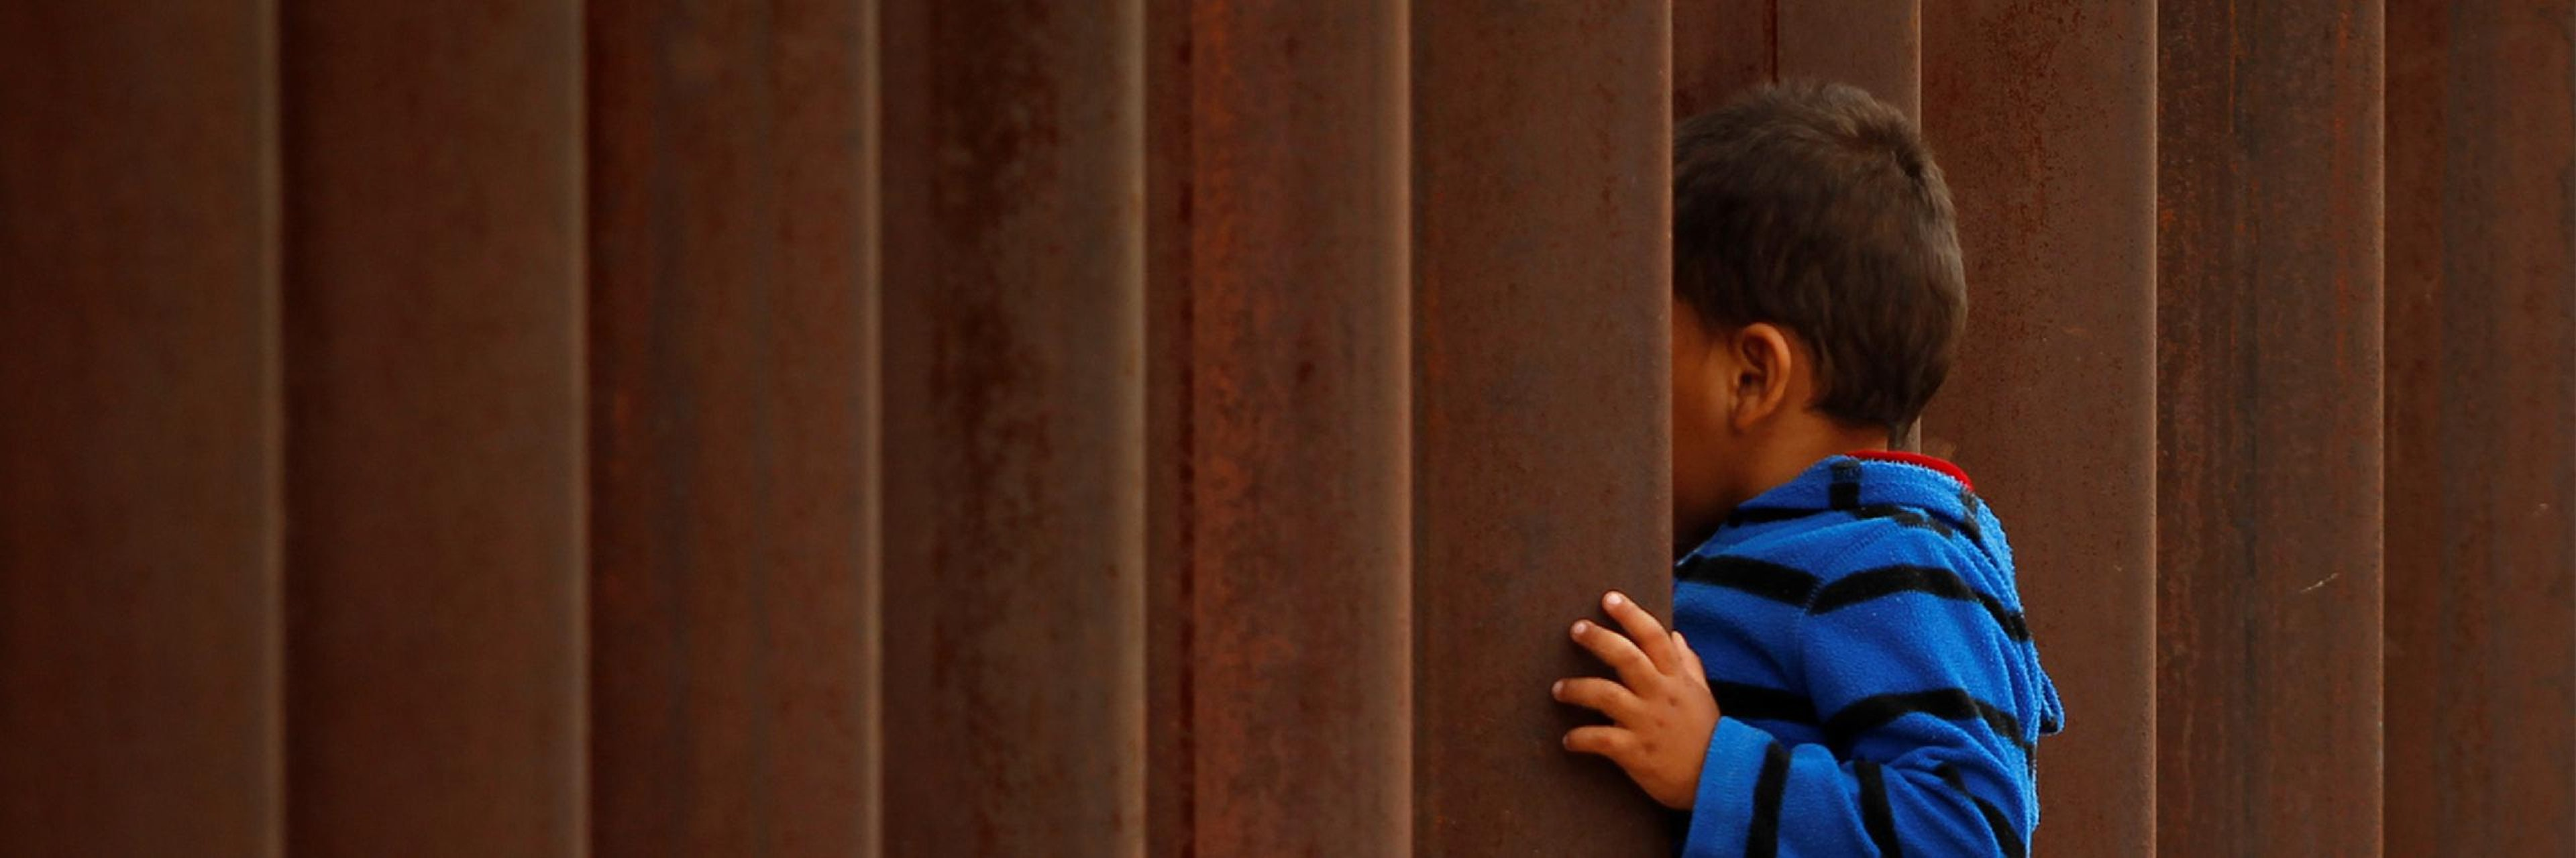 The Crime of Family Separation & the Compassion of a Muslim Sultan